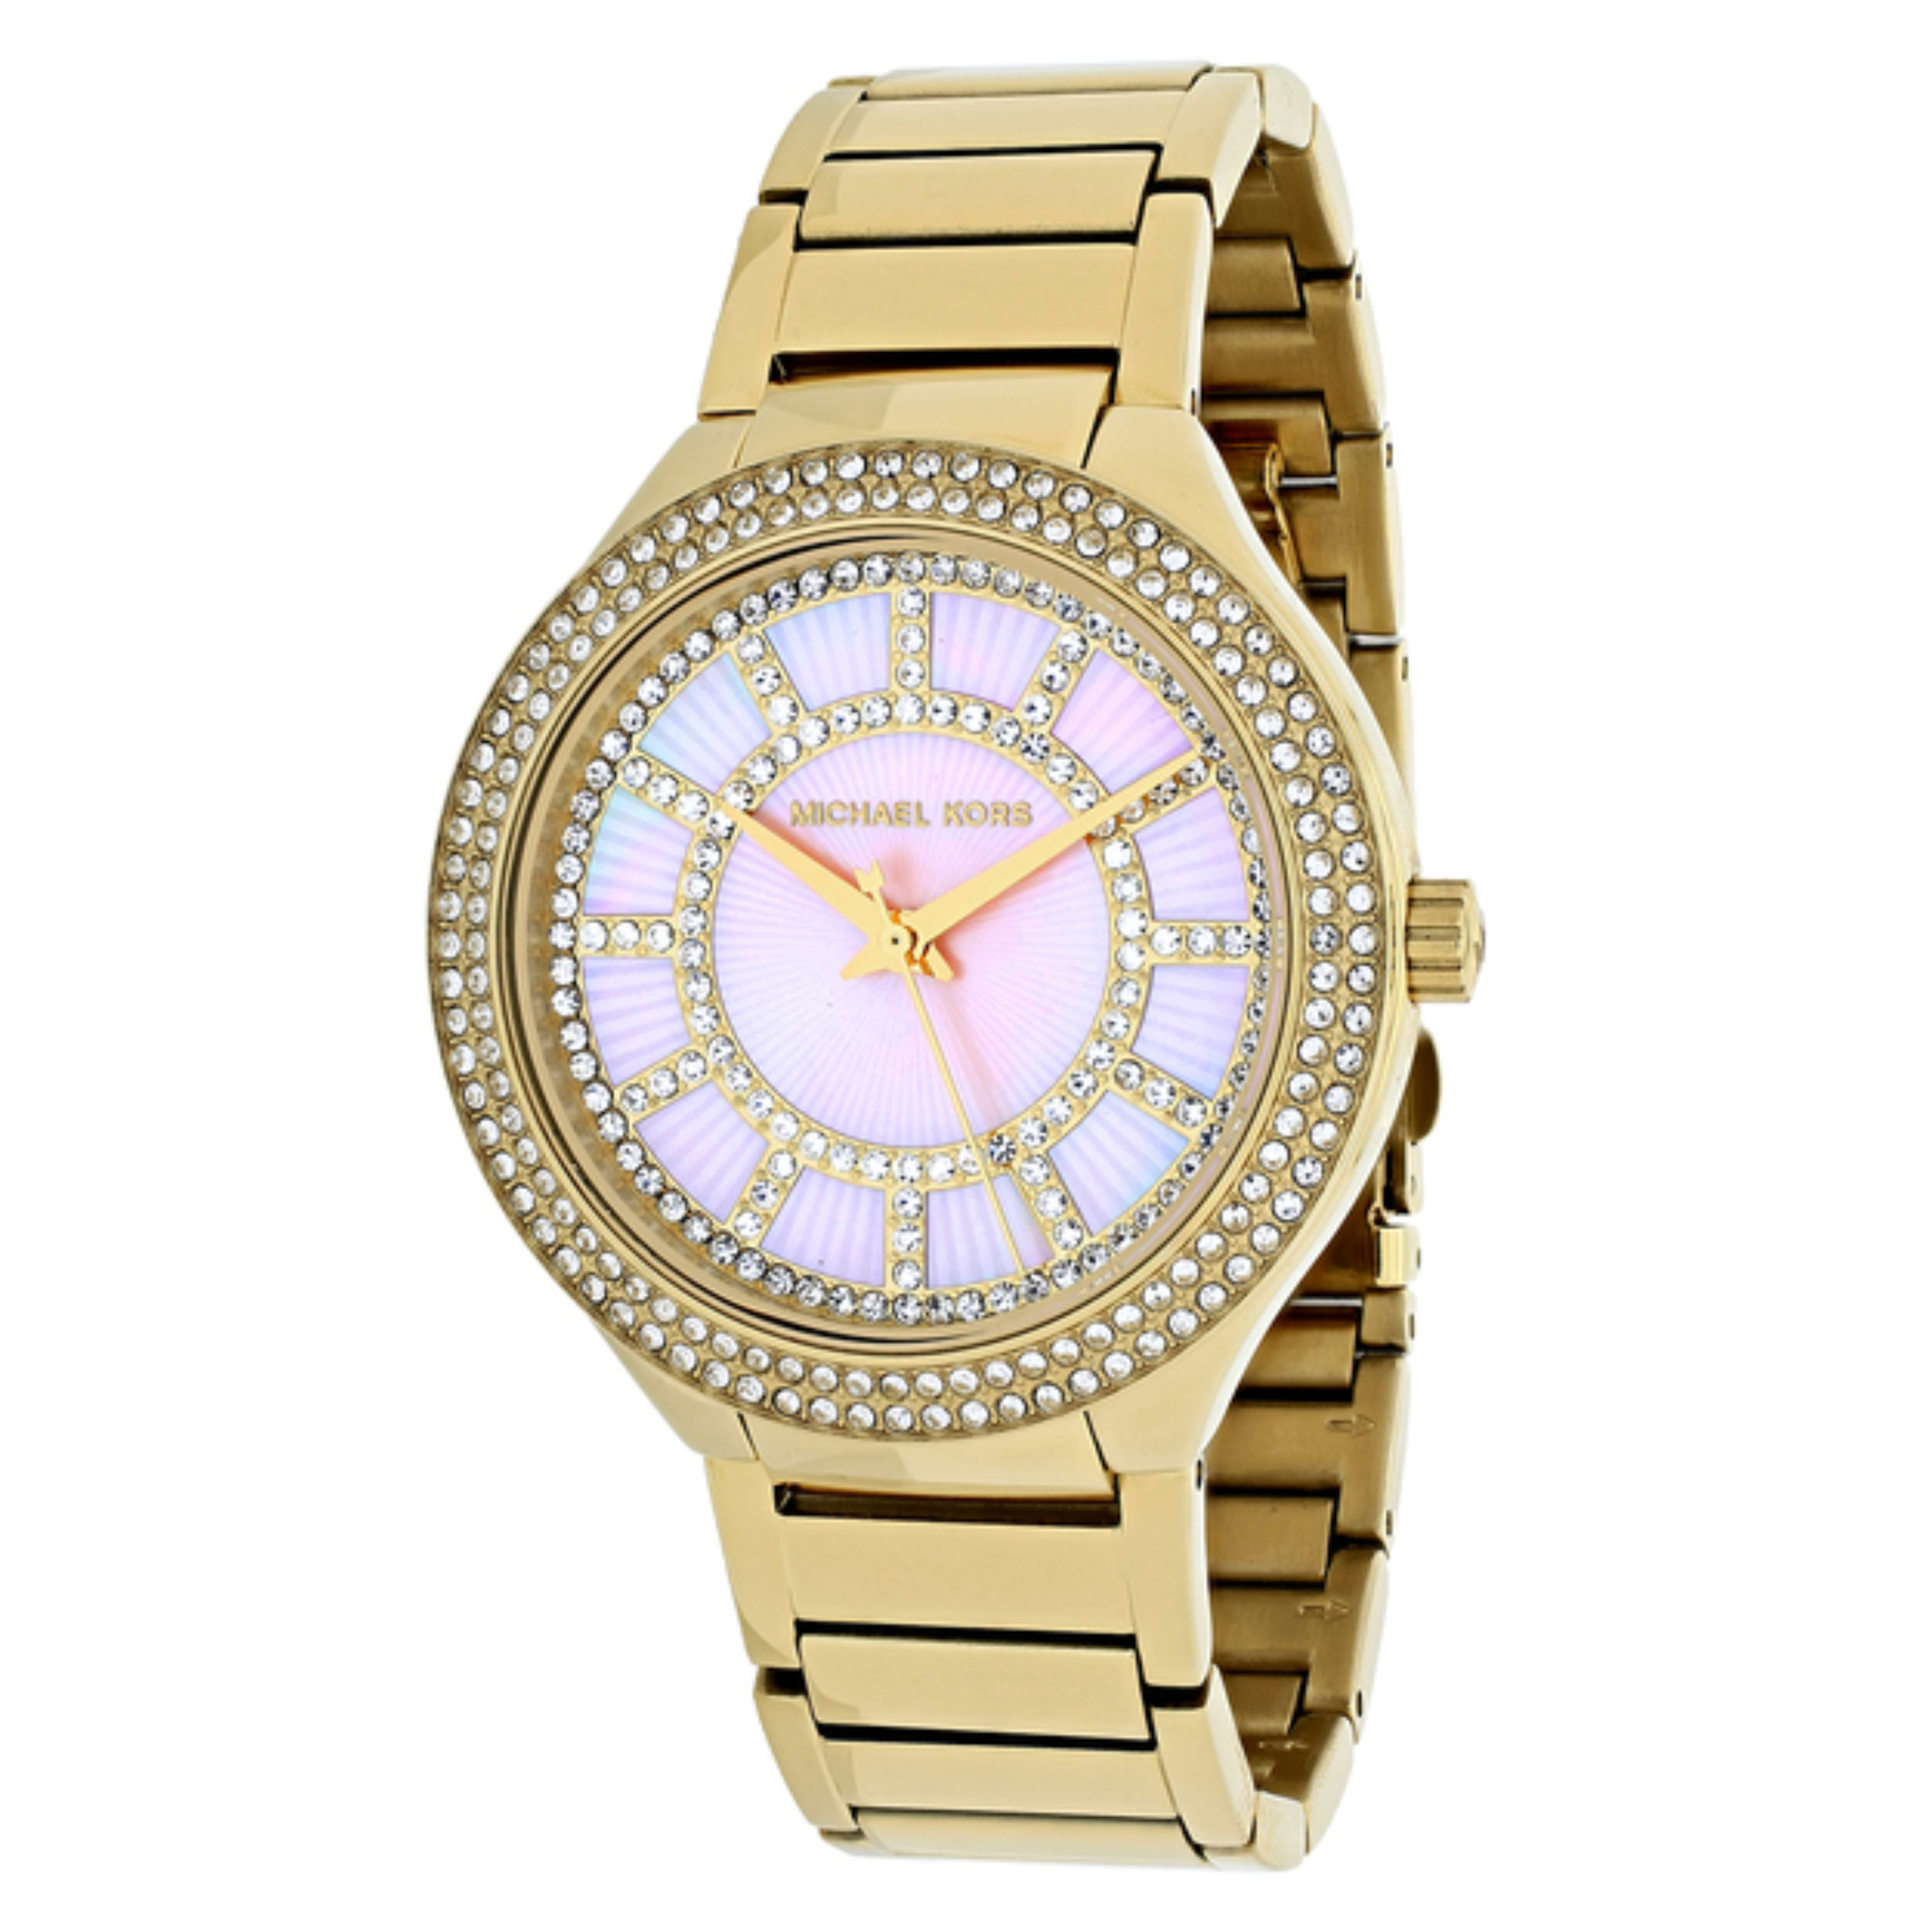 Michael Kors Kerry Pink Mother of Pearl Dial Gold Tone S.Steel Case Watch MK3396